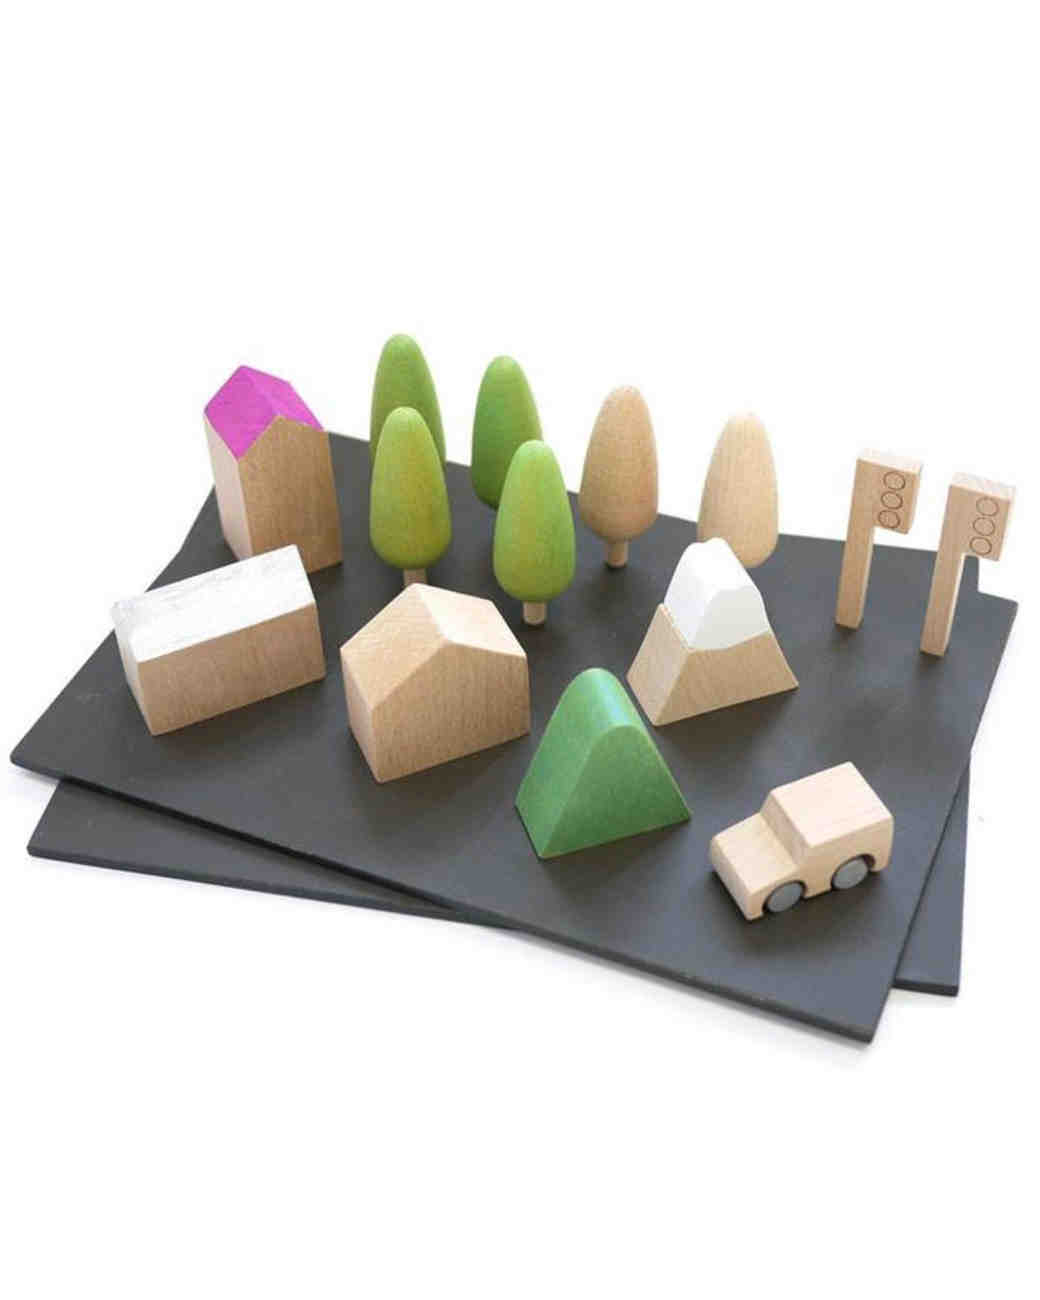 ring bearer gift guide kukkai wooden town play set